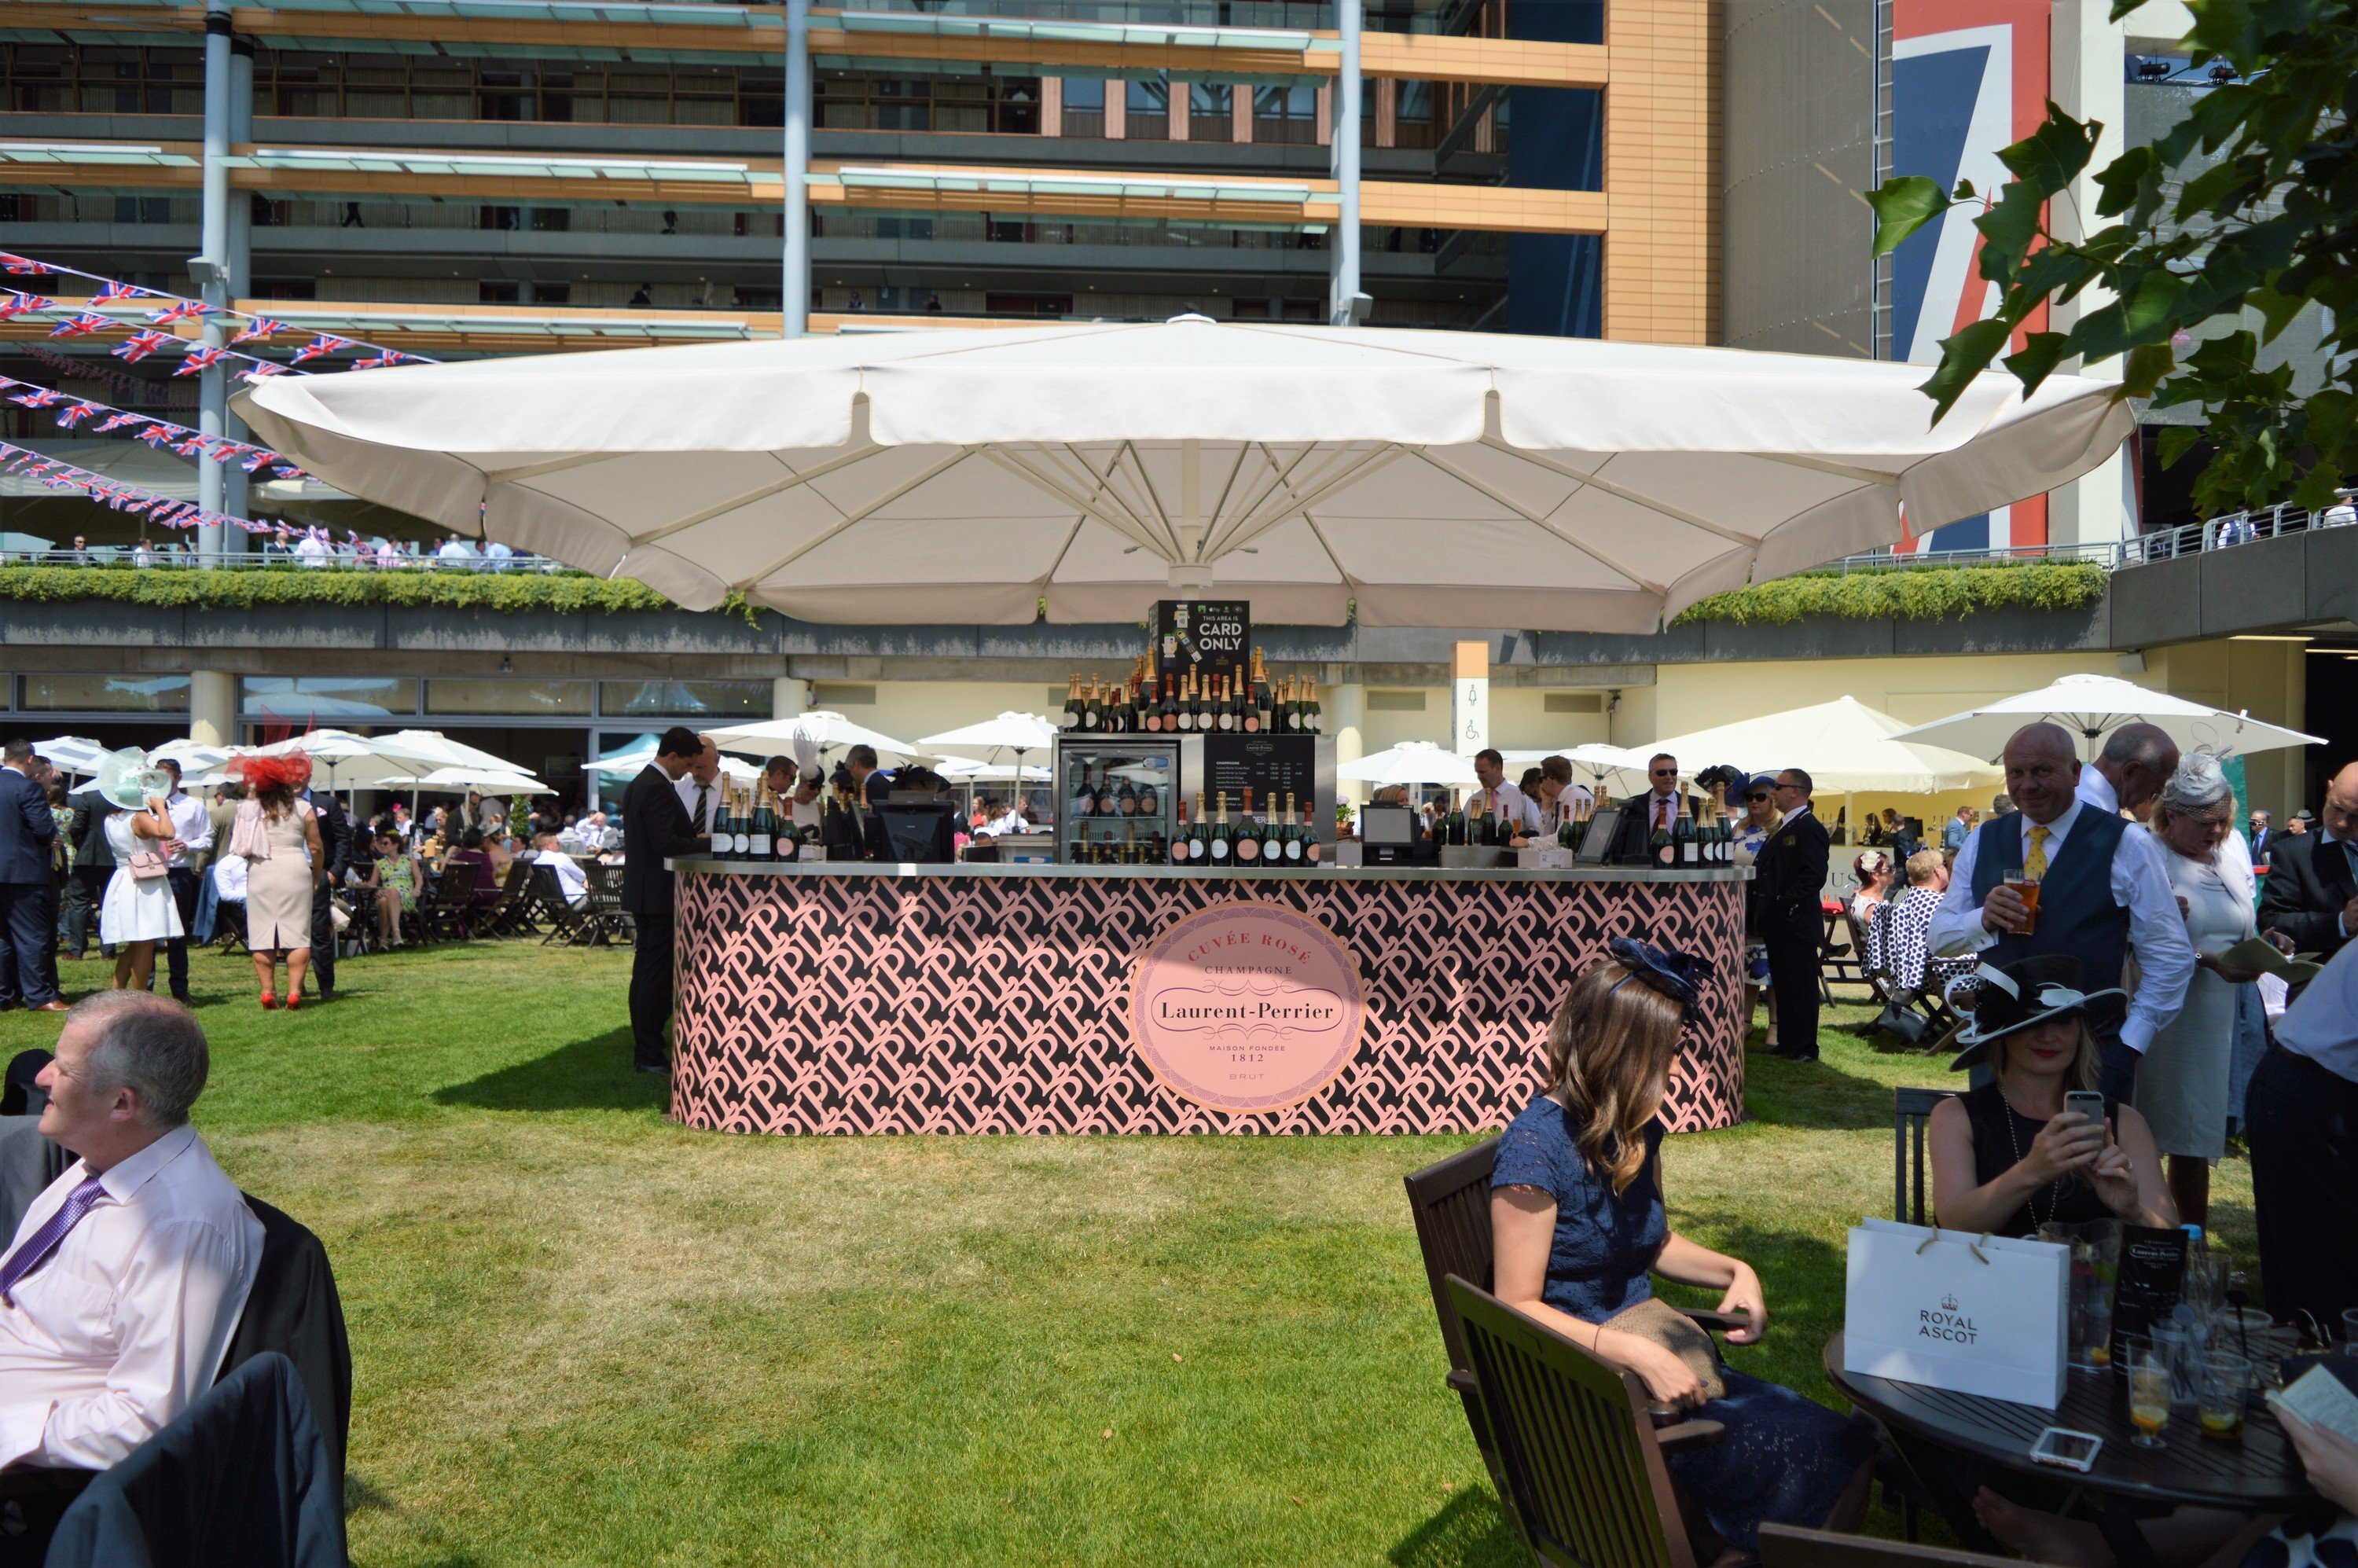 <p>Event, Mobile & Stadia Bars – Umbrella Bar – Champagne Bar.</p> <p>Premium Champagne Bar Laurent Perrier.</p> <p> </p> <p>Ideally suited as a centre piece outdoor event bar serving premium champagne or other premium drinks brands at high profile sporting events including Royal Ascot, Cricket at Lords.</p> <p> </p> <p>Bespoke Design and Manufacture in UK to meet customer individual requirements</p>